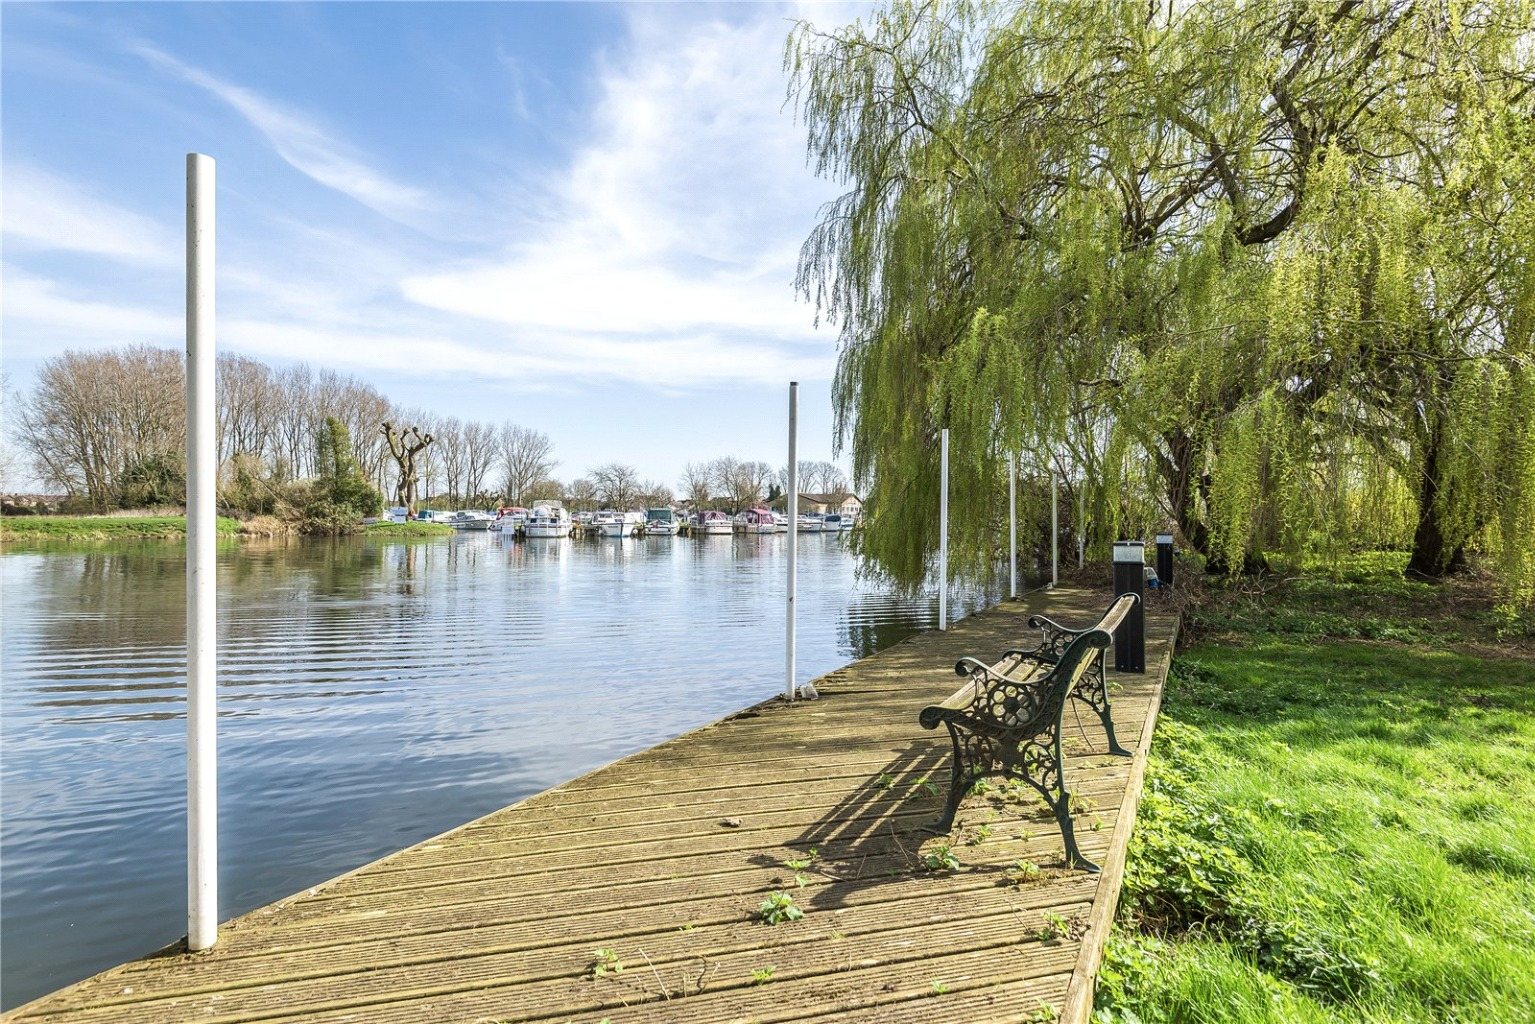 Have you ever dreamt of owning your own river boat, or river frontage with fishing rights? This could be your chance. A very rare opportunity has arisen to acquire this substantial riverside plot, right next to the marina in St. Neots.